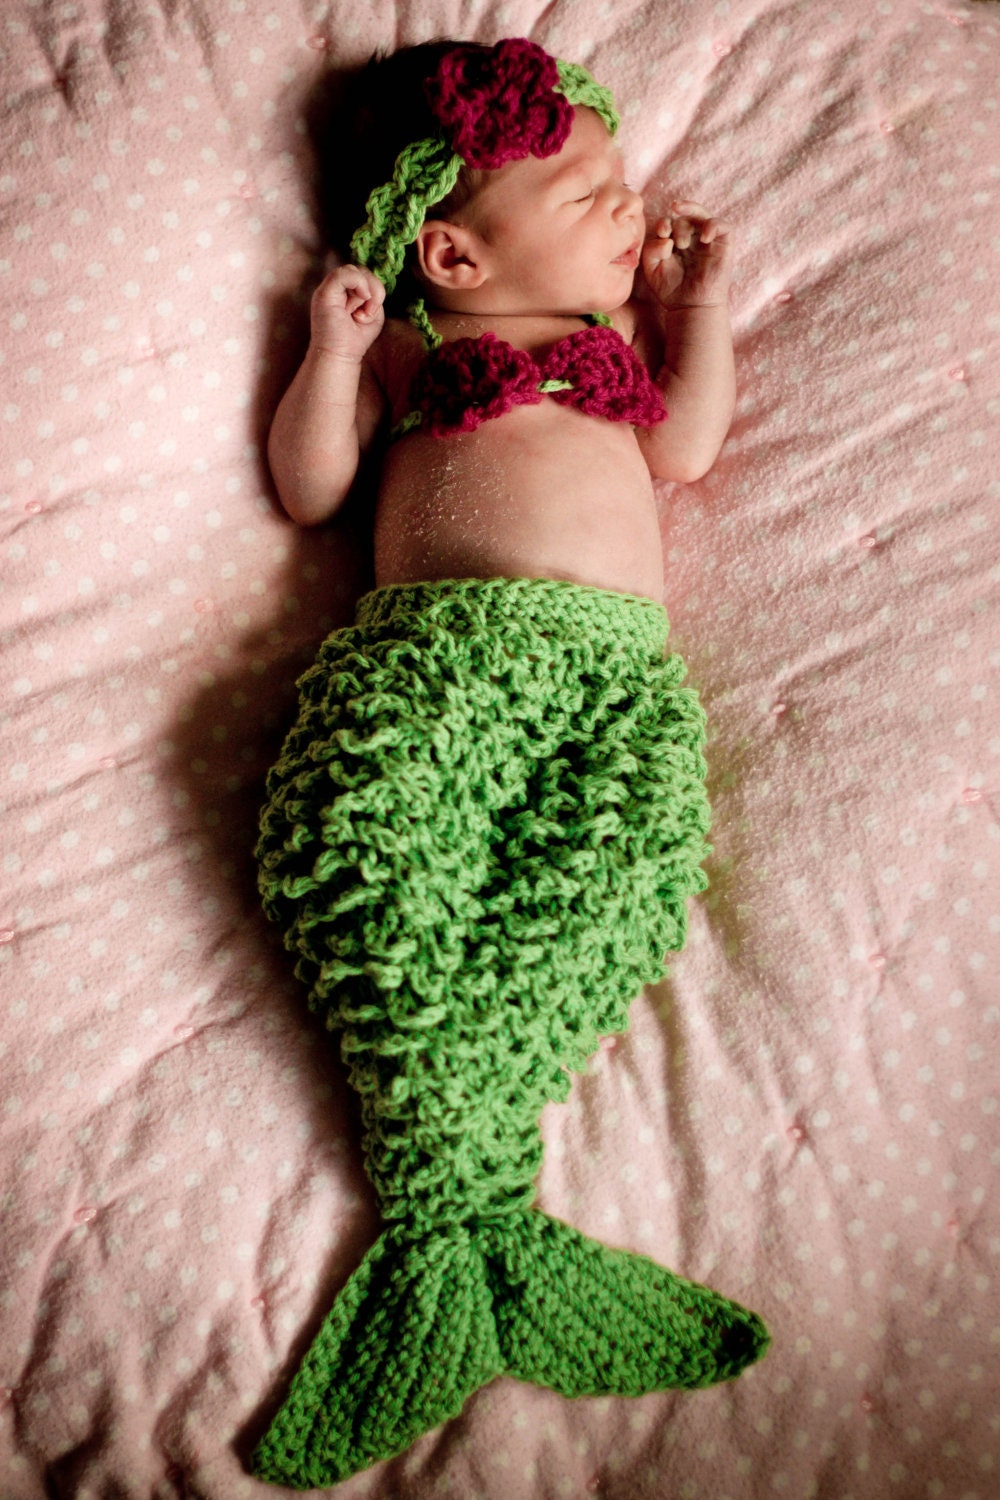 Crochet Patterns Mermaid : Newborn Mermaid PDF crochet Pattern by BrindyRae on Etsy